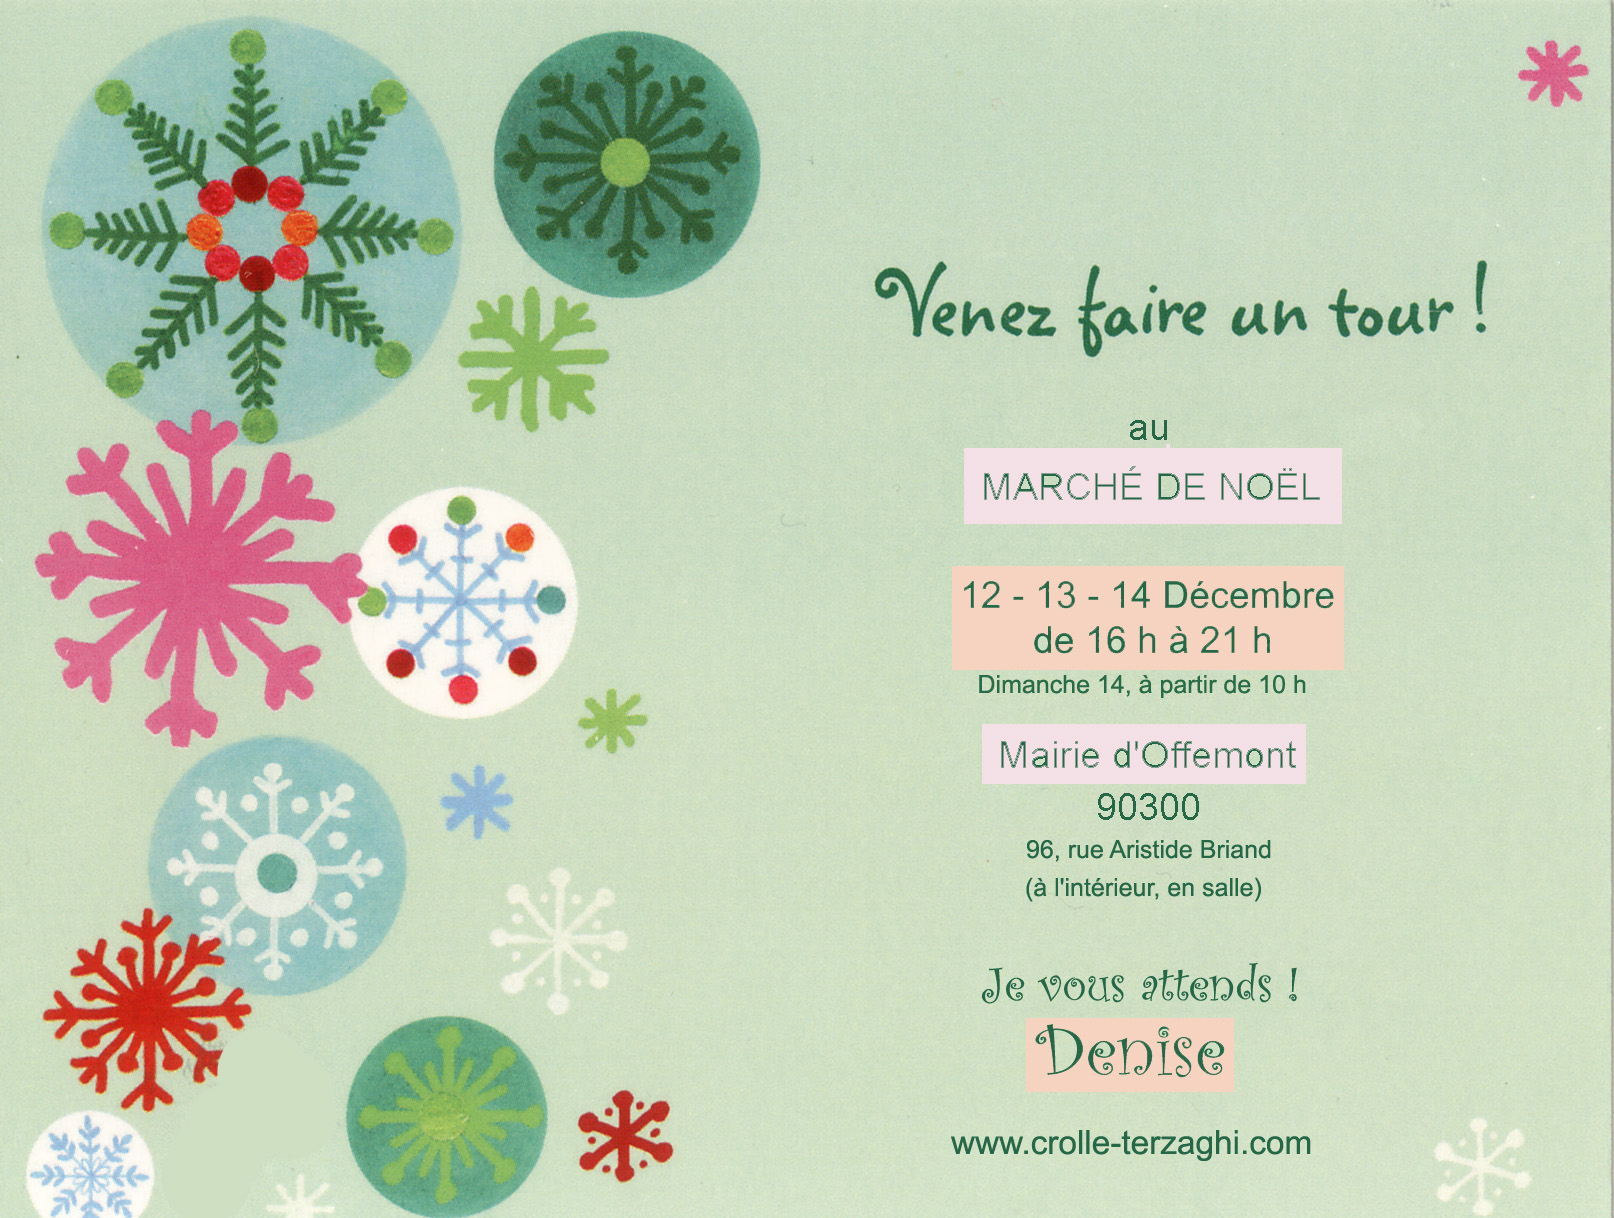 Venez ce week end au march de nol doffemont invitation march noel offemont2014 stopboris Choice Image